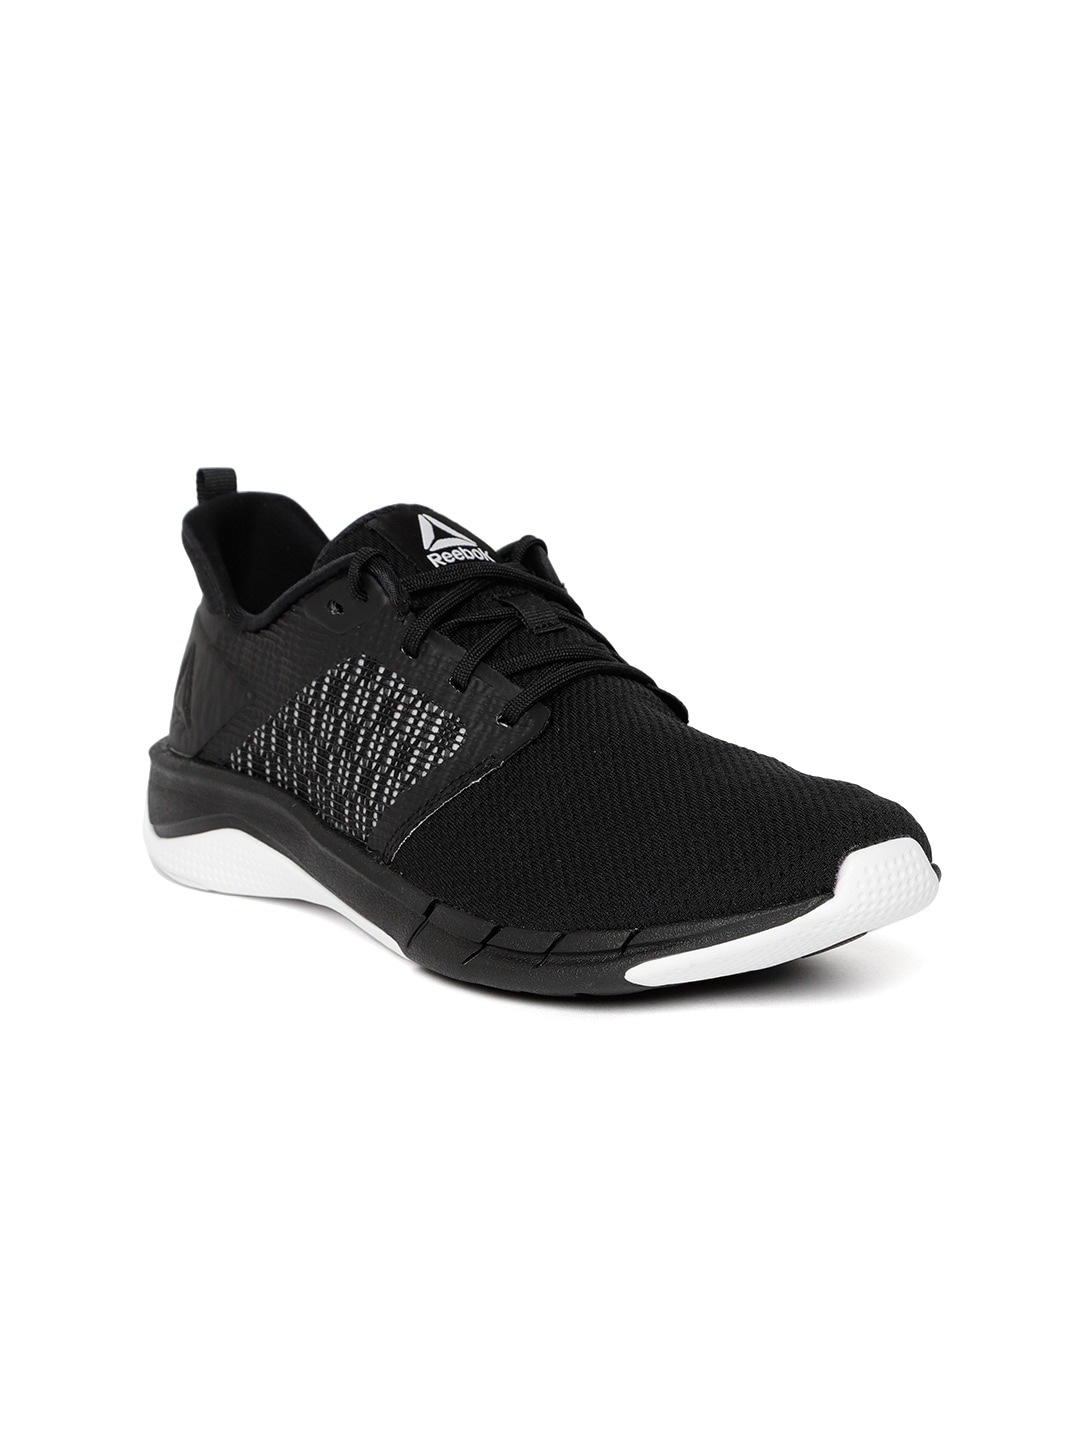 89ee77e4e3a Reebok Women Running Shoe - Buy Reebok Women Running Shoe online in India